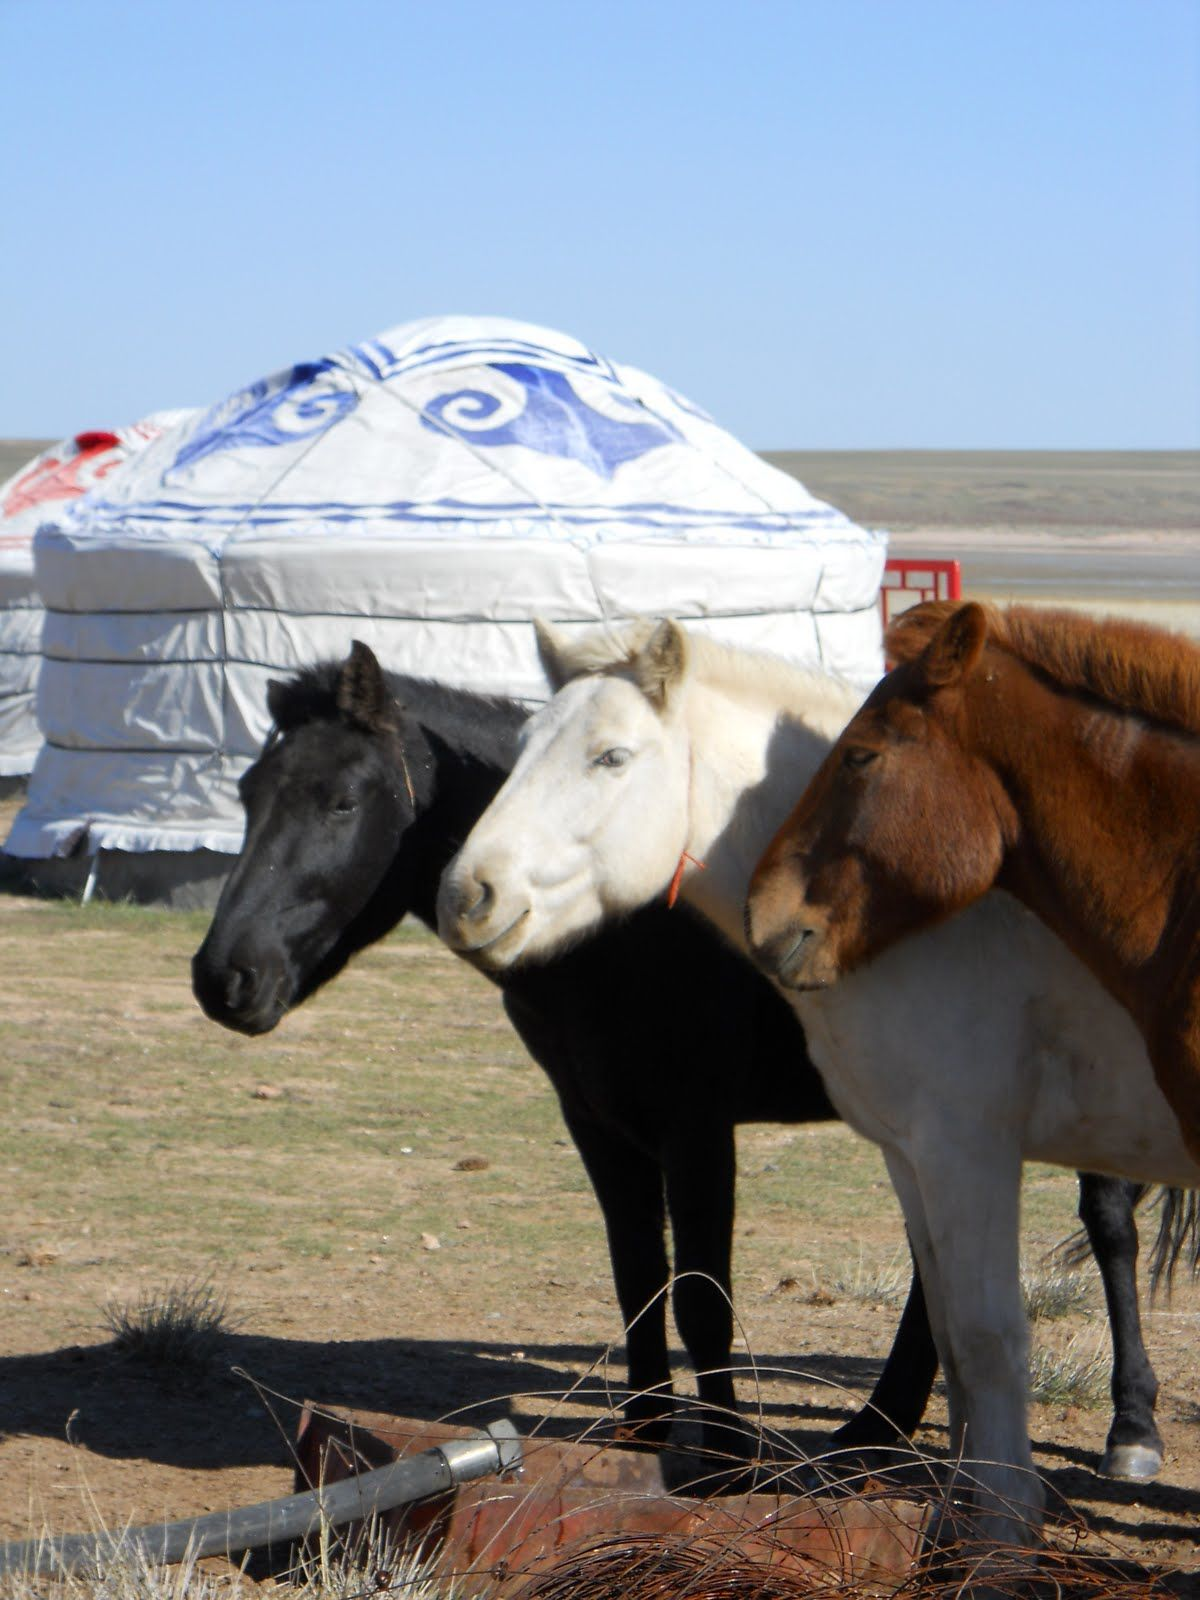 Diane Daniel S Blog Mongolian Grasslands Horses Mongolian People Most Beautiful Animals They are a sturdy, reliable type of tent. mongolian grasslands